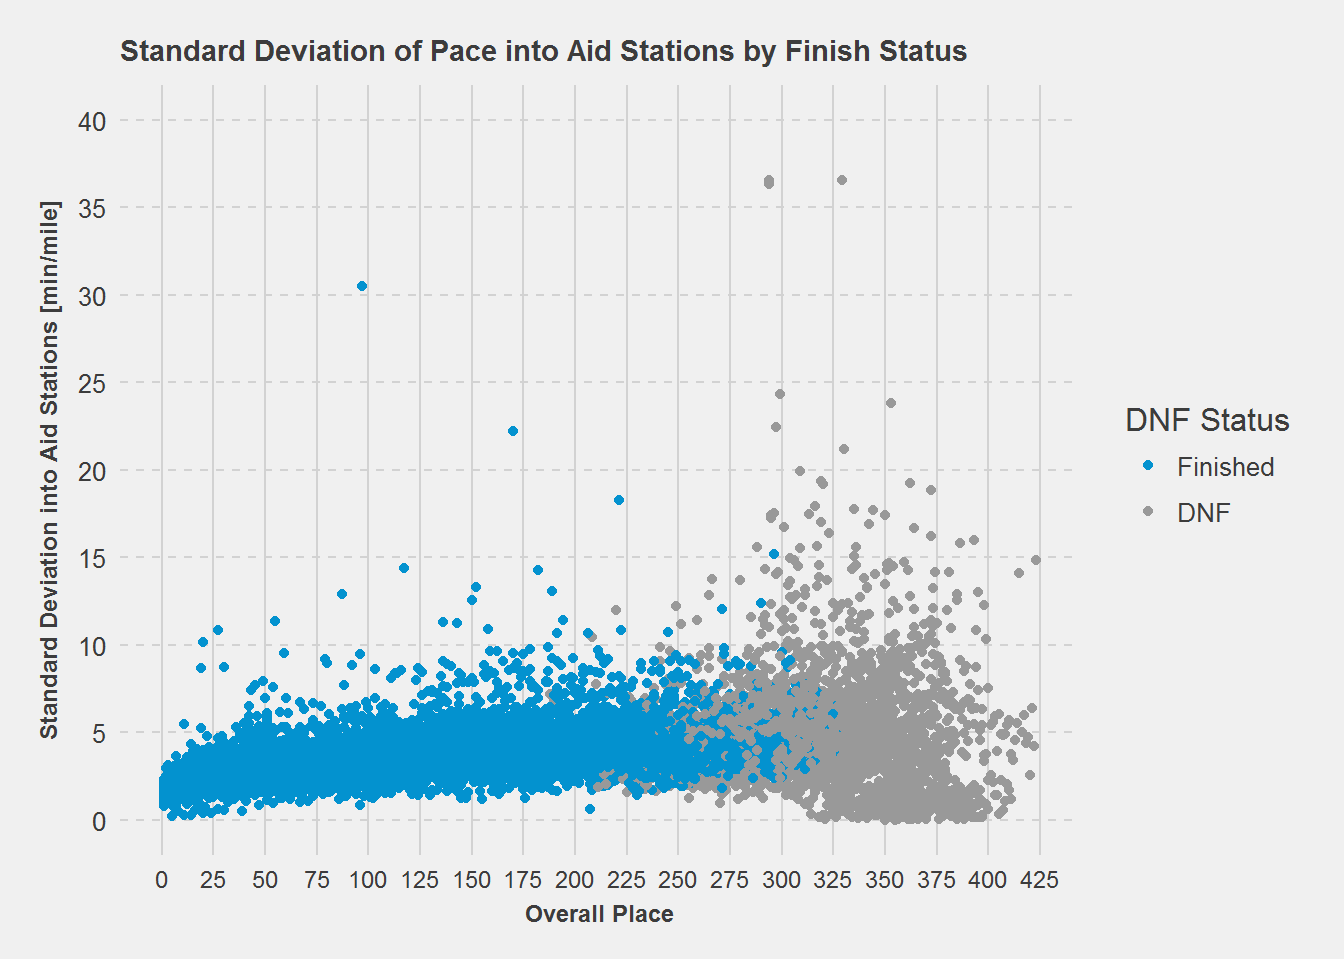 Standard Deviation of pace into Aid Stations